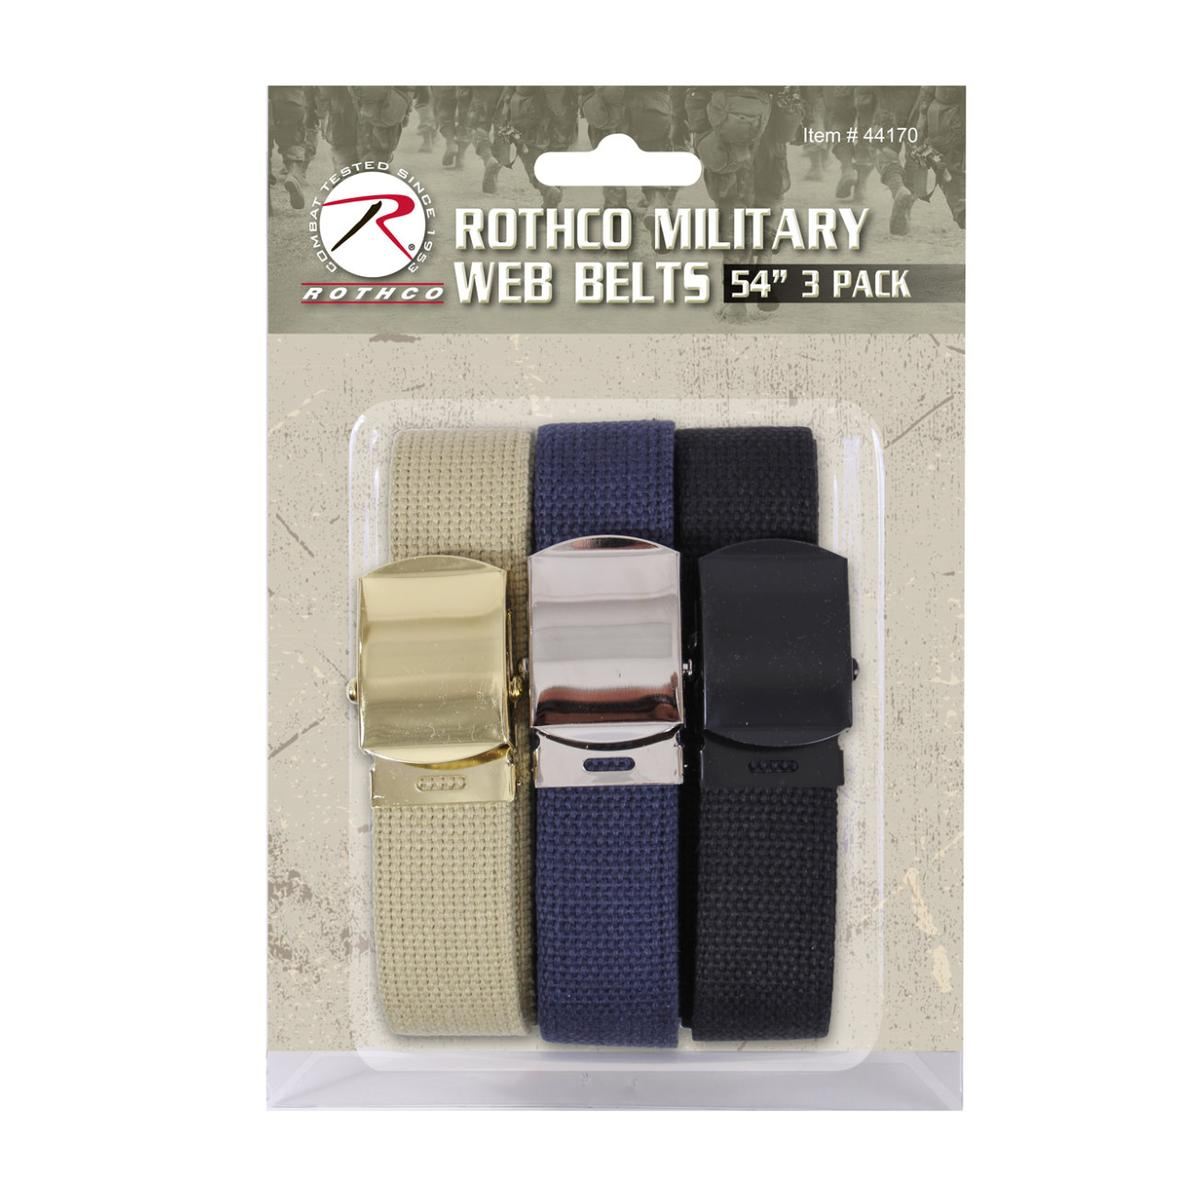 "Rothco 54"" Military Web Belts 3-Pack, Black, Navy Blue, Khaki"